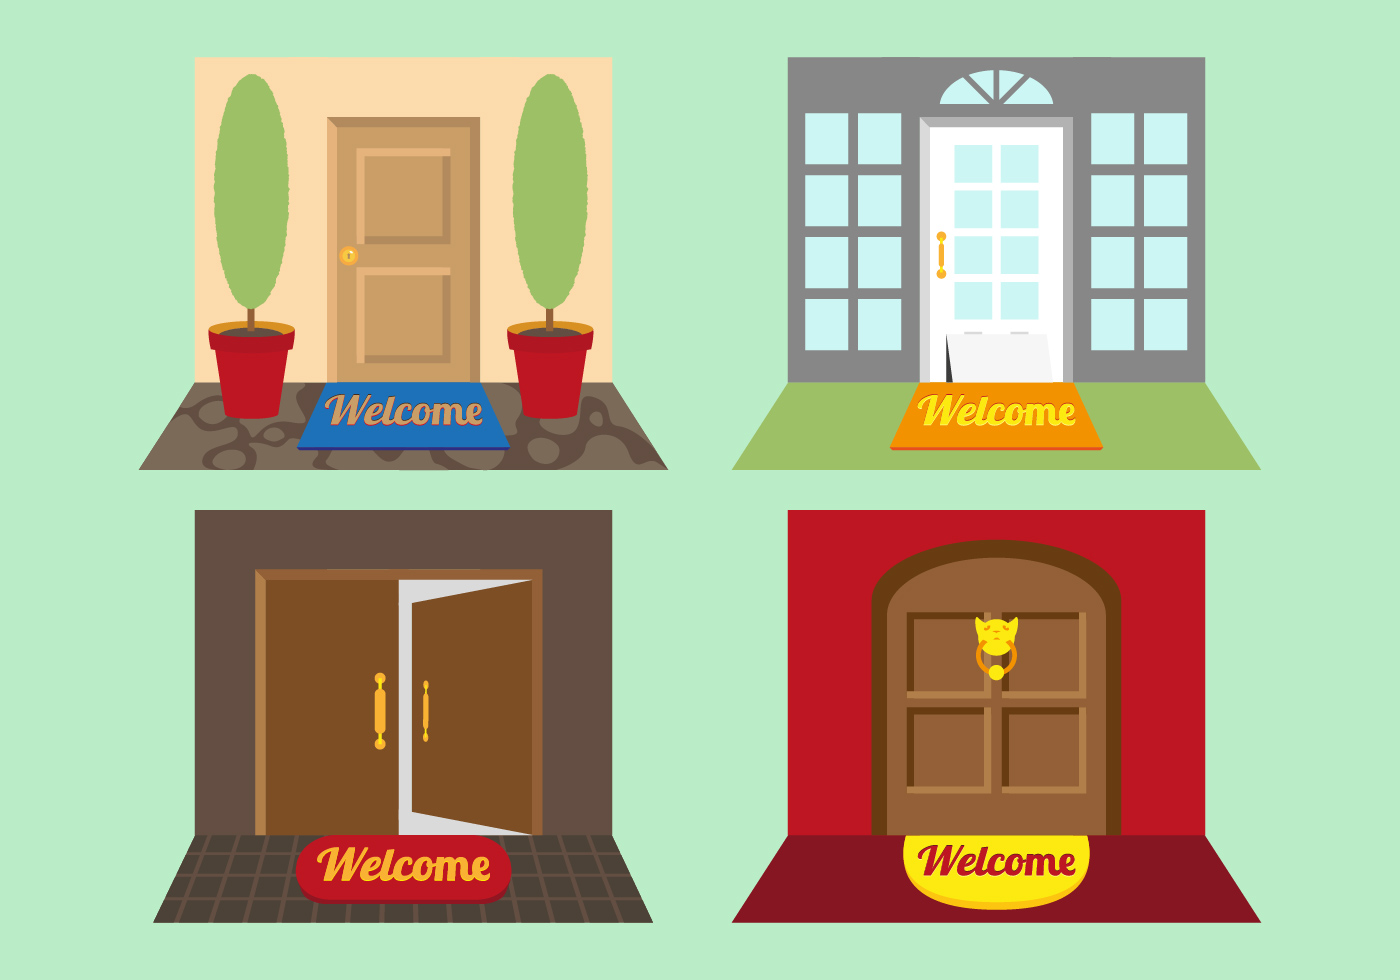 Download Free Vector Art Stock: Welcome Mat Illustrations Vector